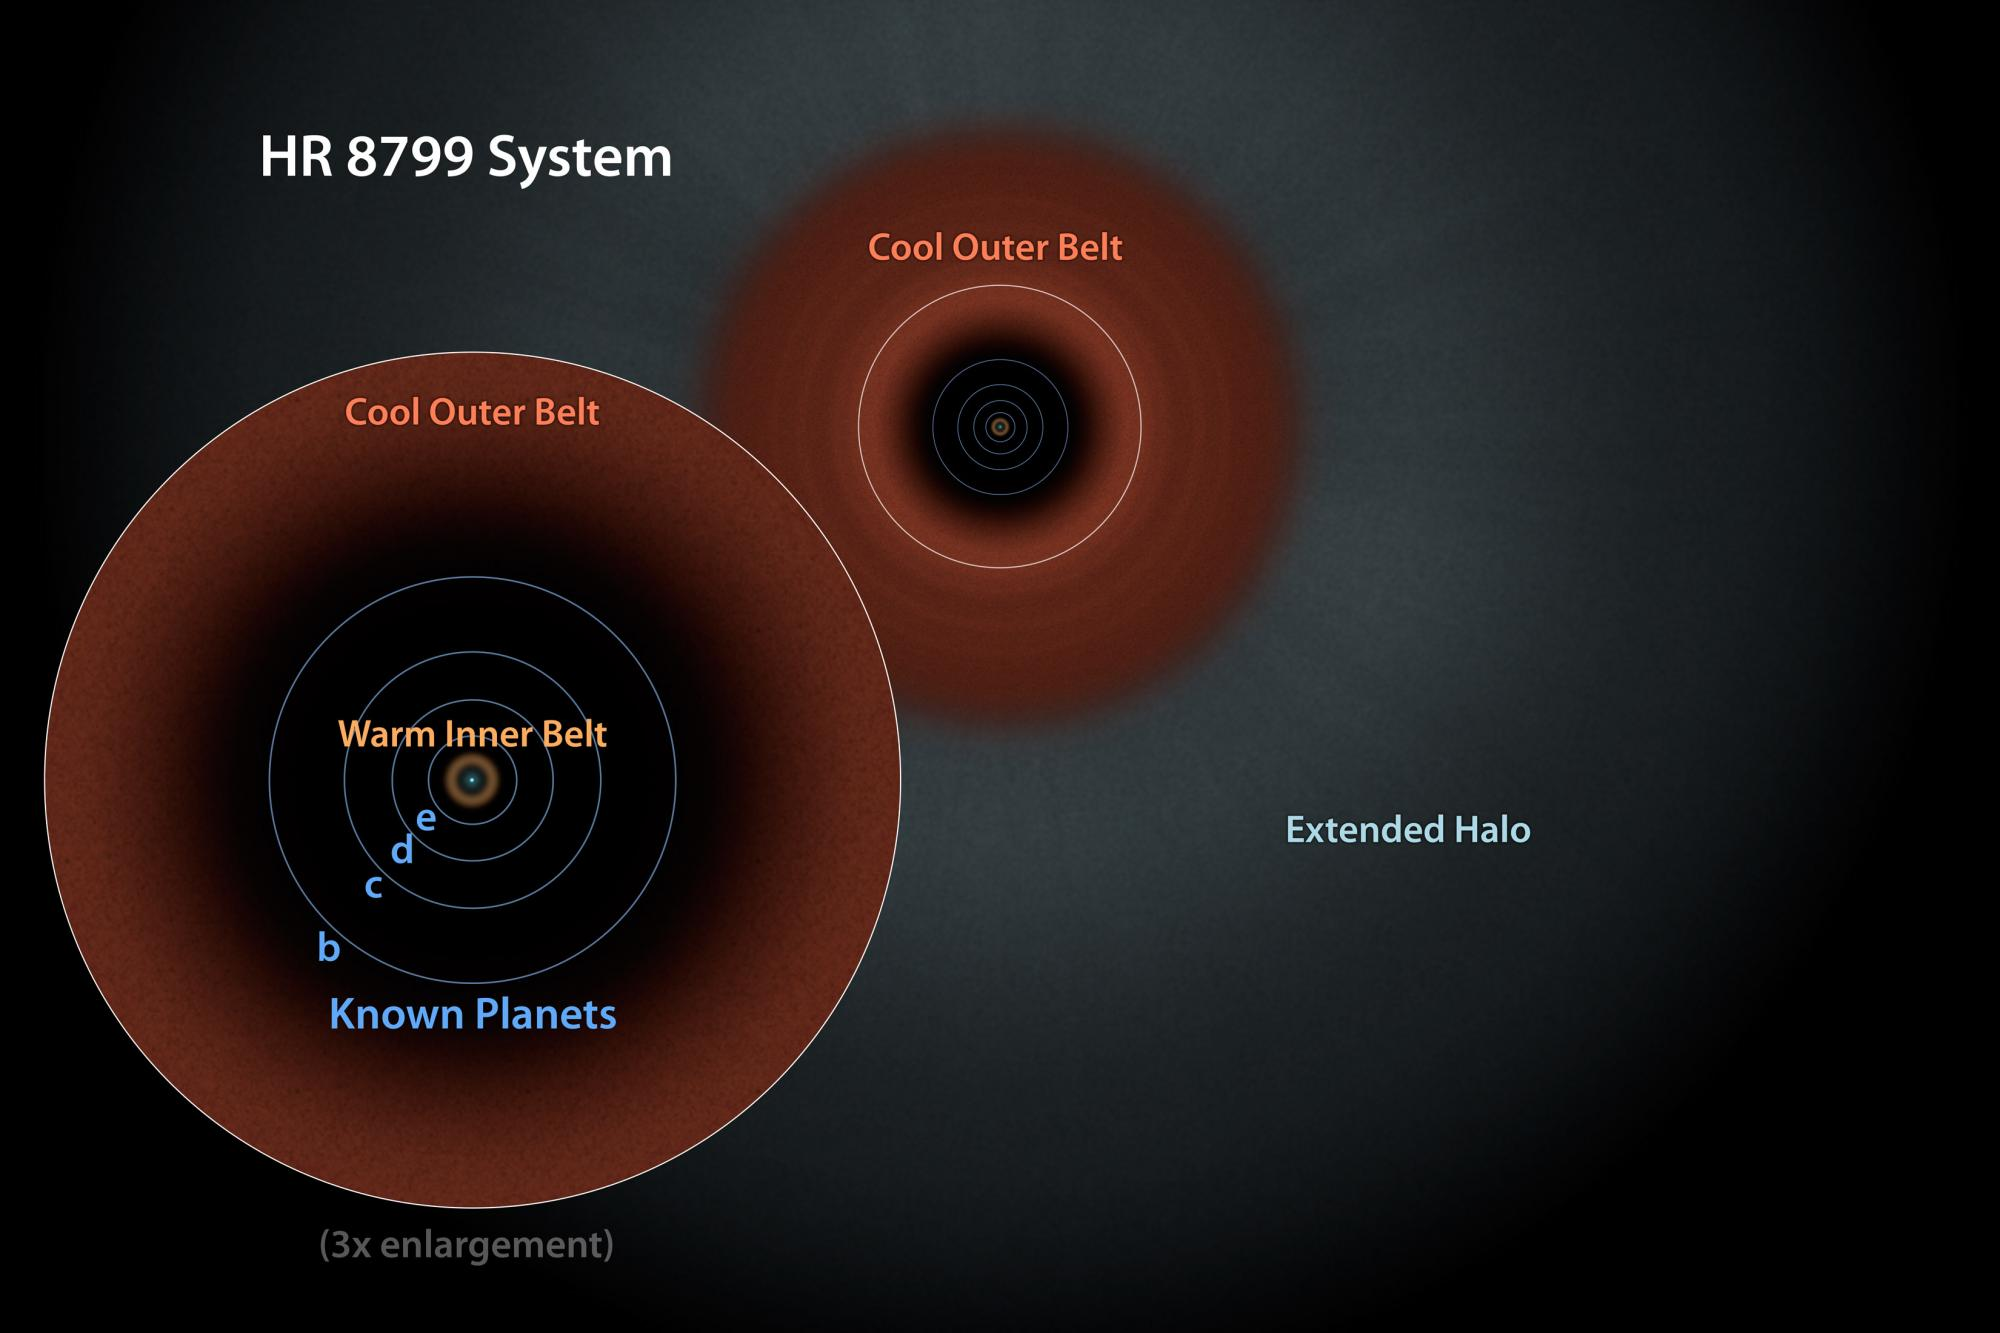 A schematic view of the HR 8799 system.